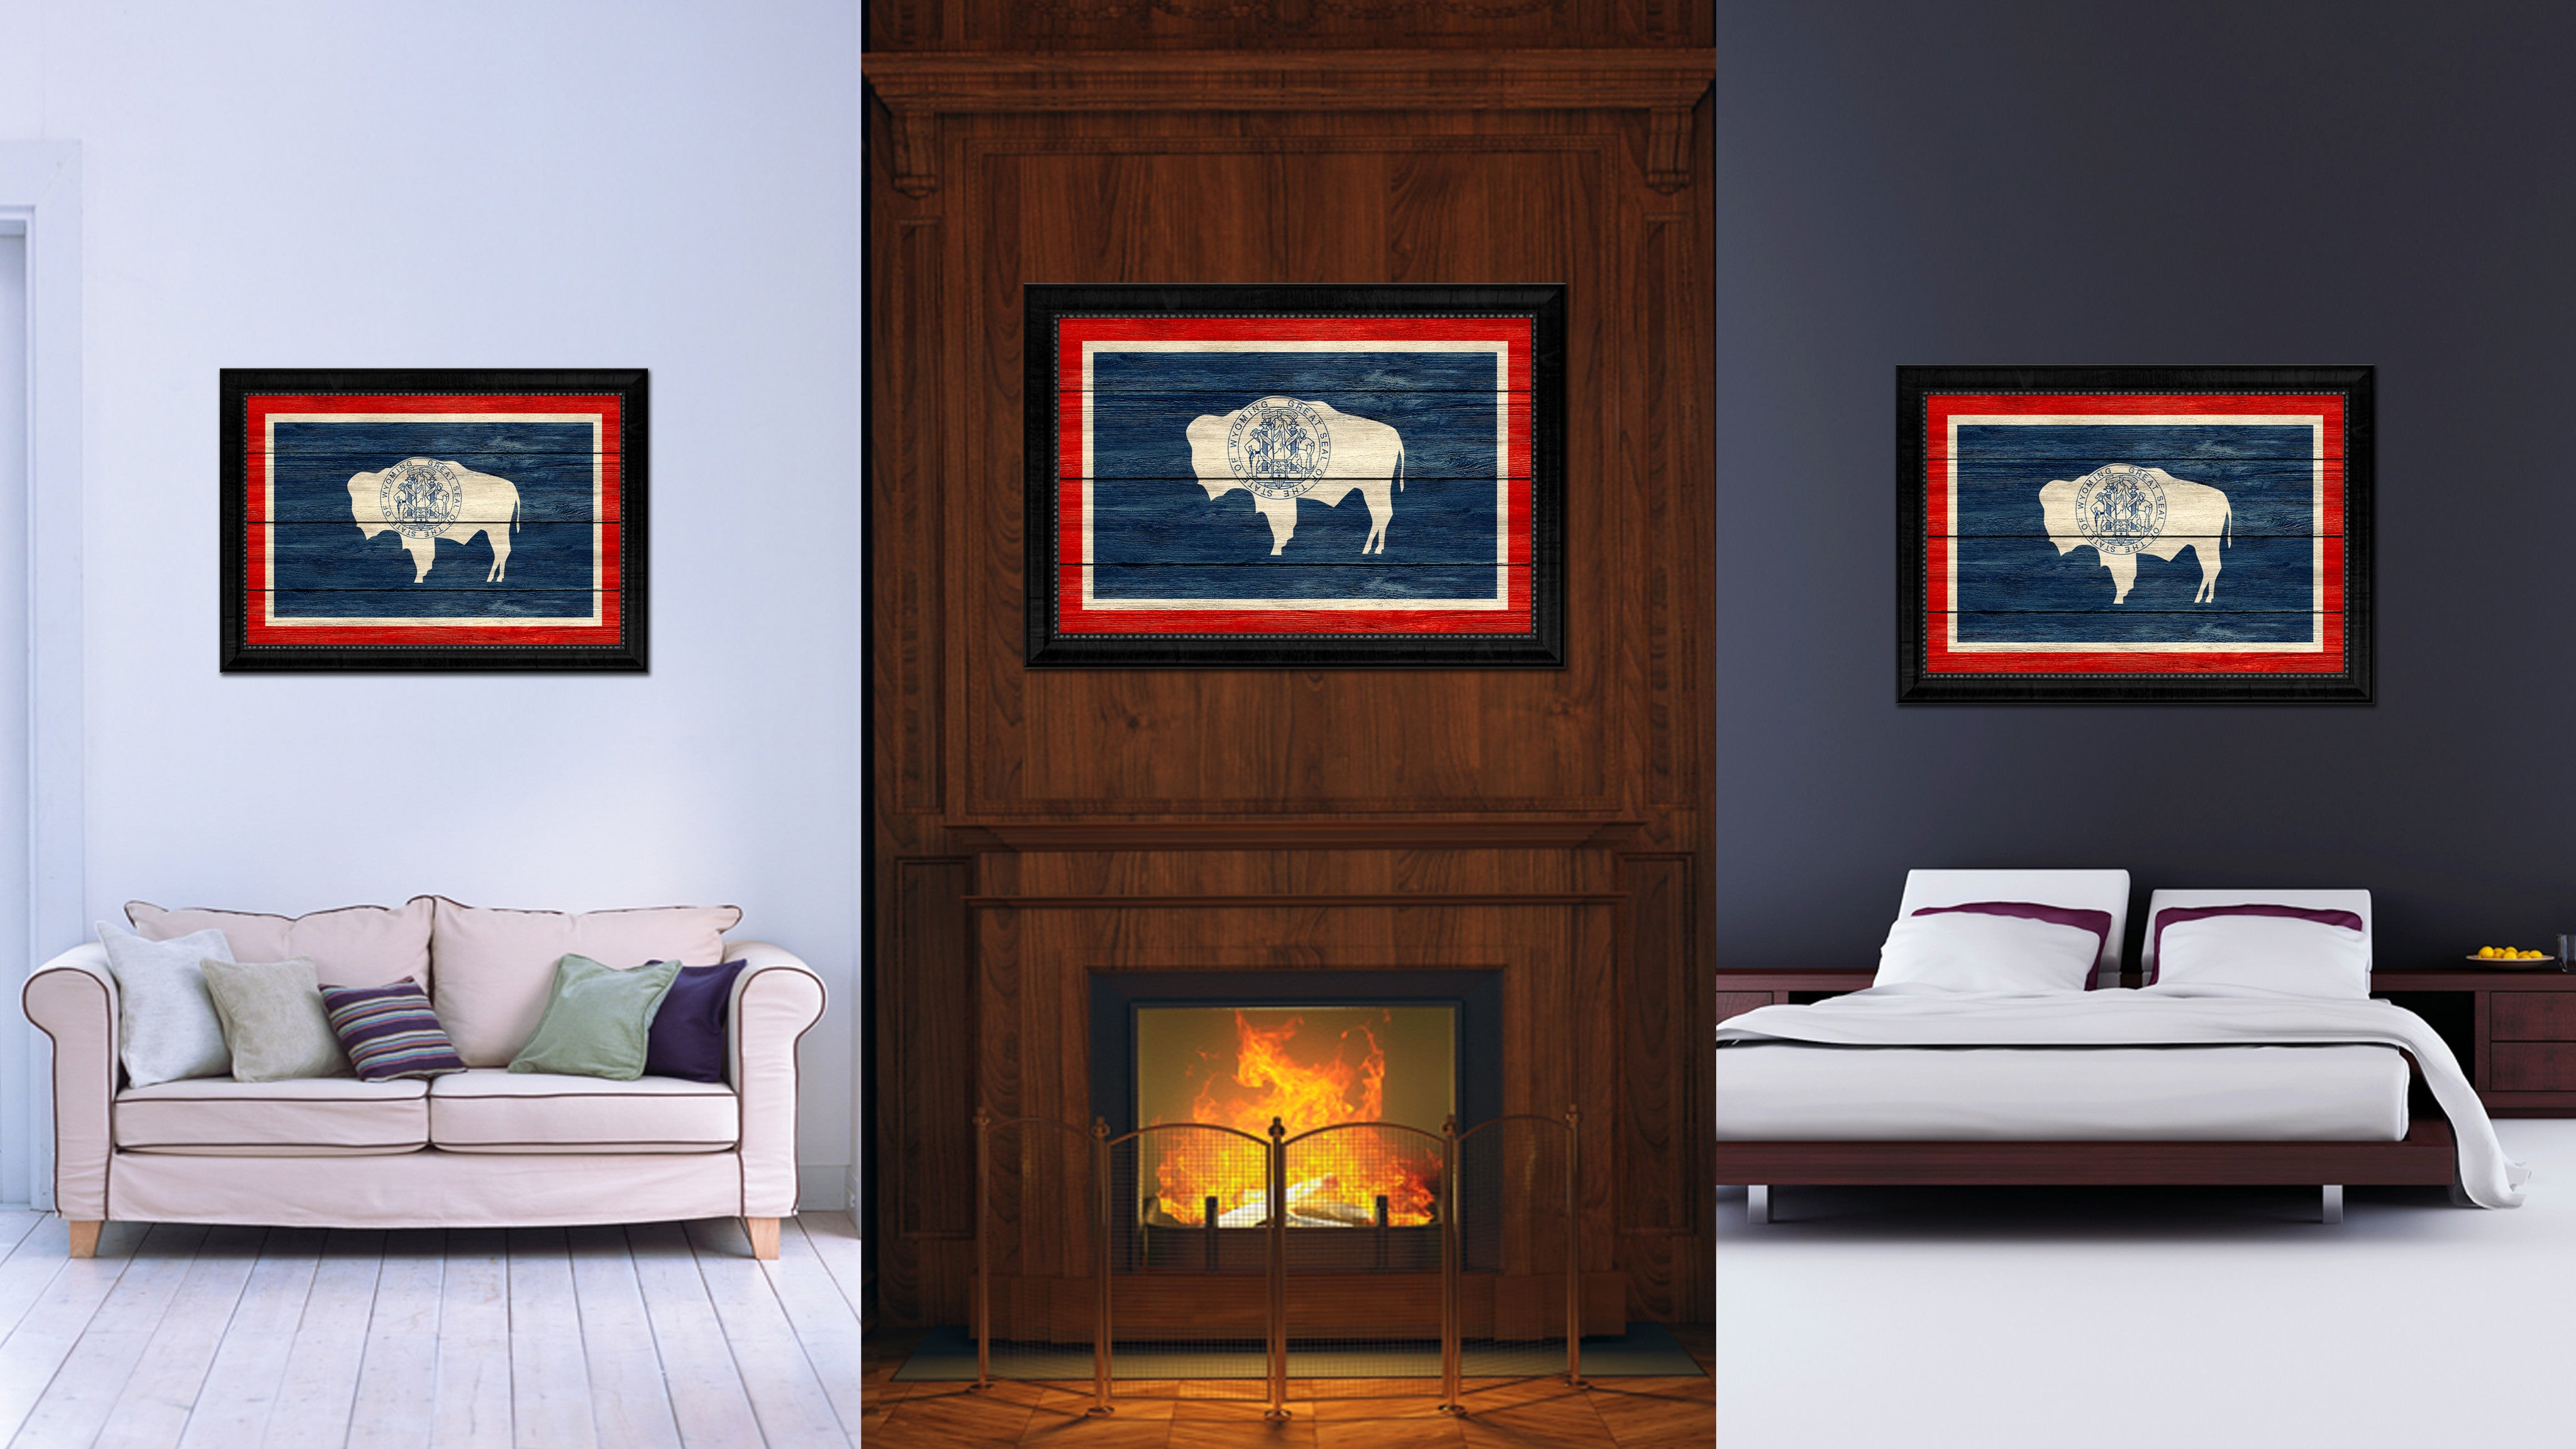 Living Room Wall Art And Decor Wyoming State Home Decor Office Wall Art Decoration Bedroom